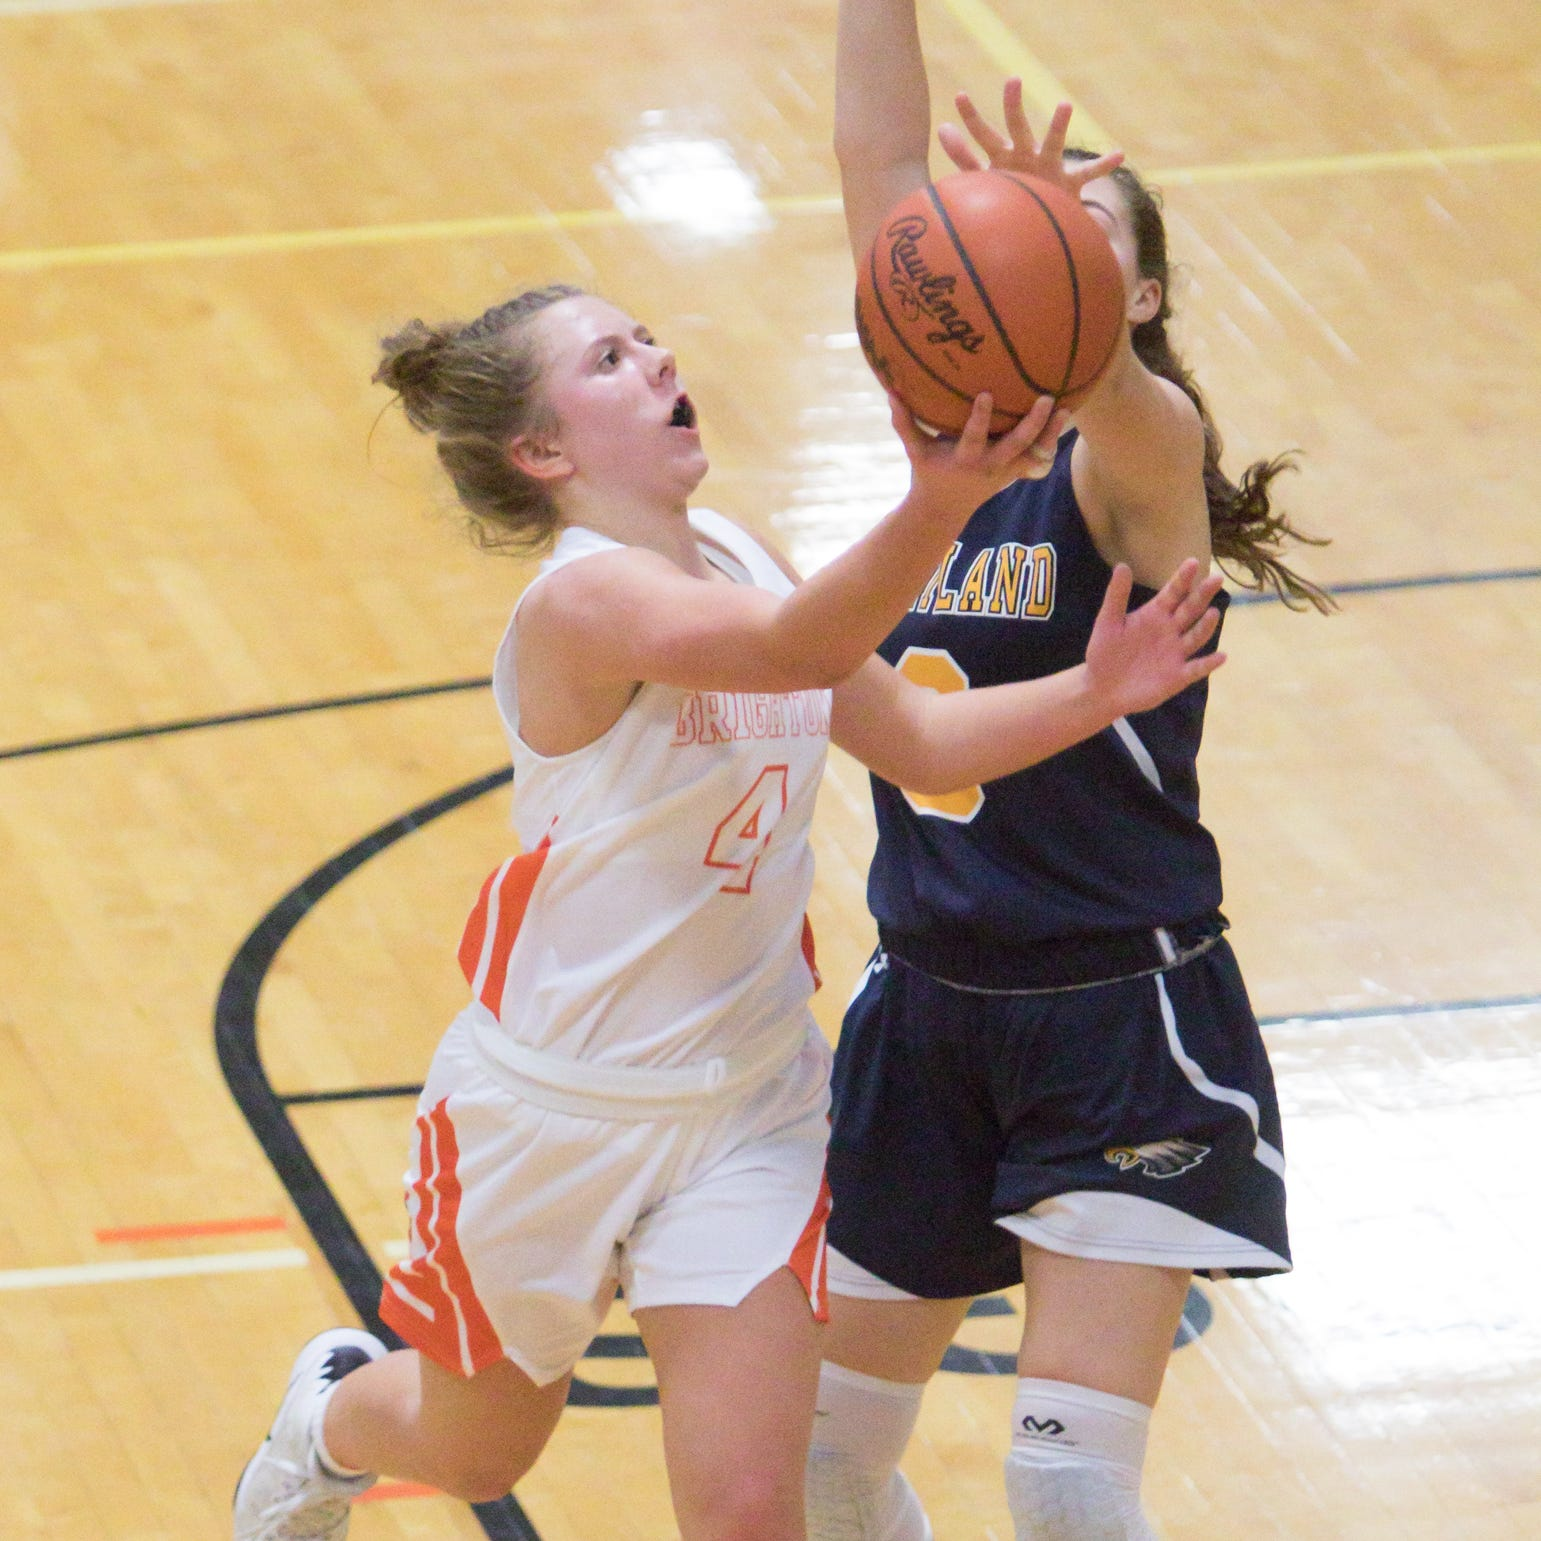 Vogt's career night lifts unbeaten Brighton girls past Hartland